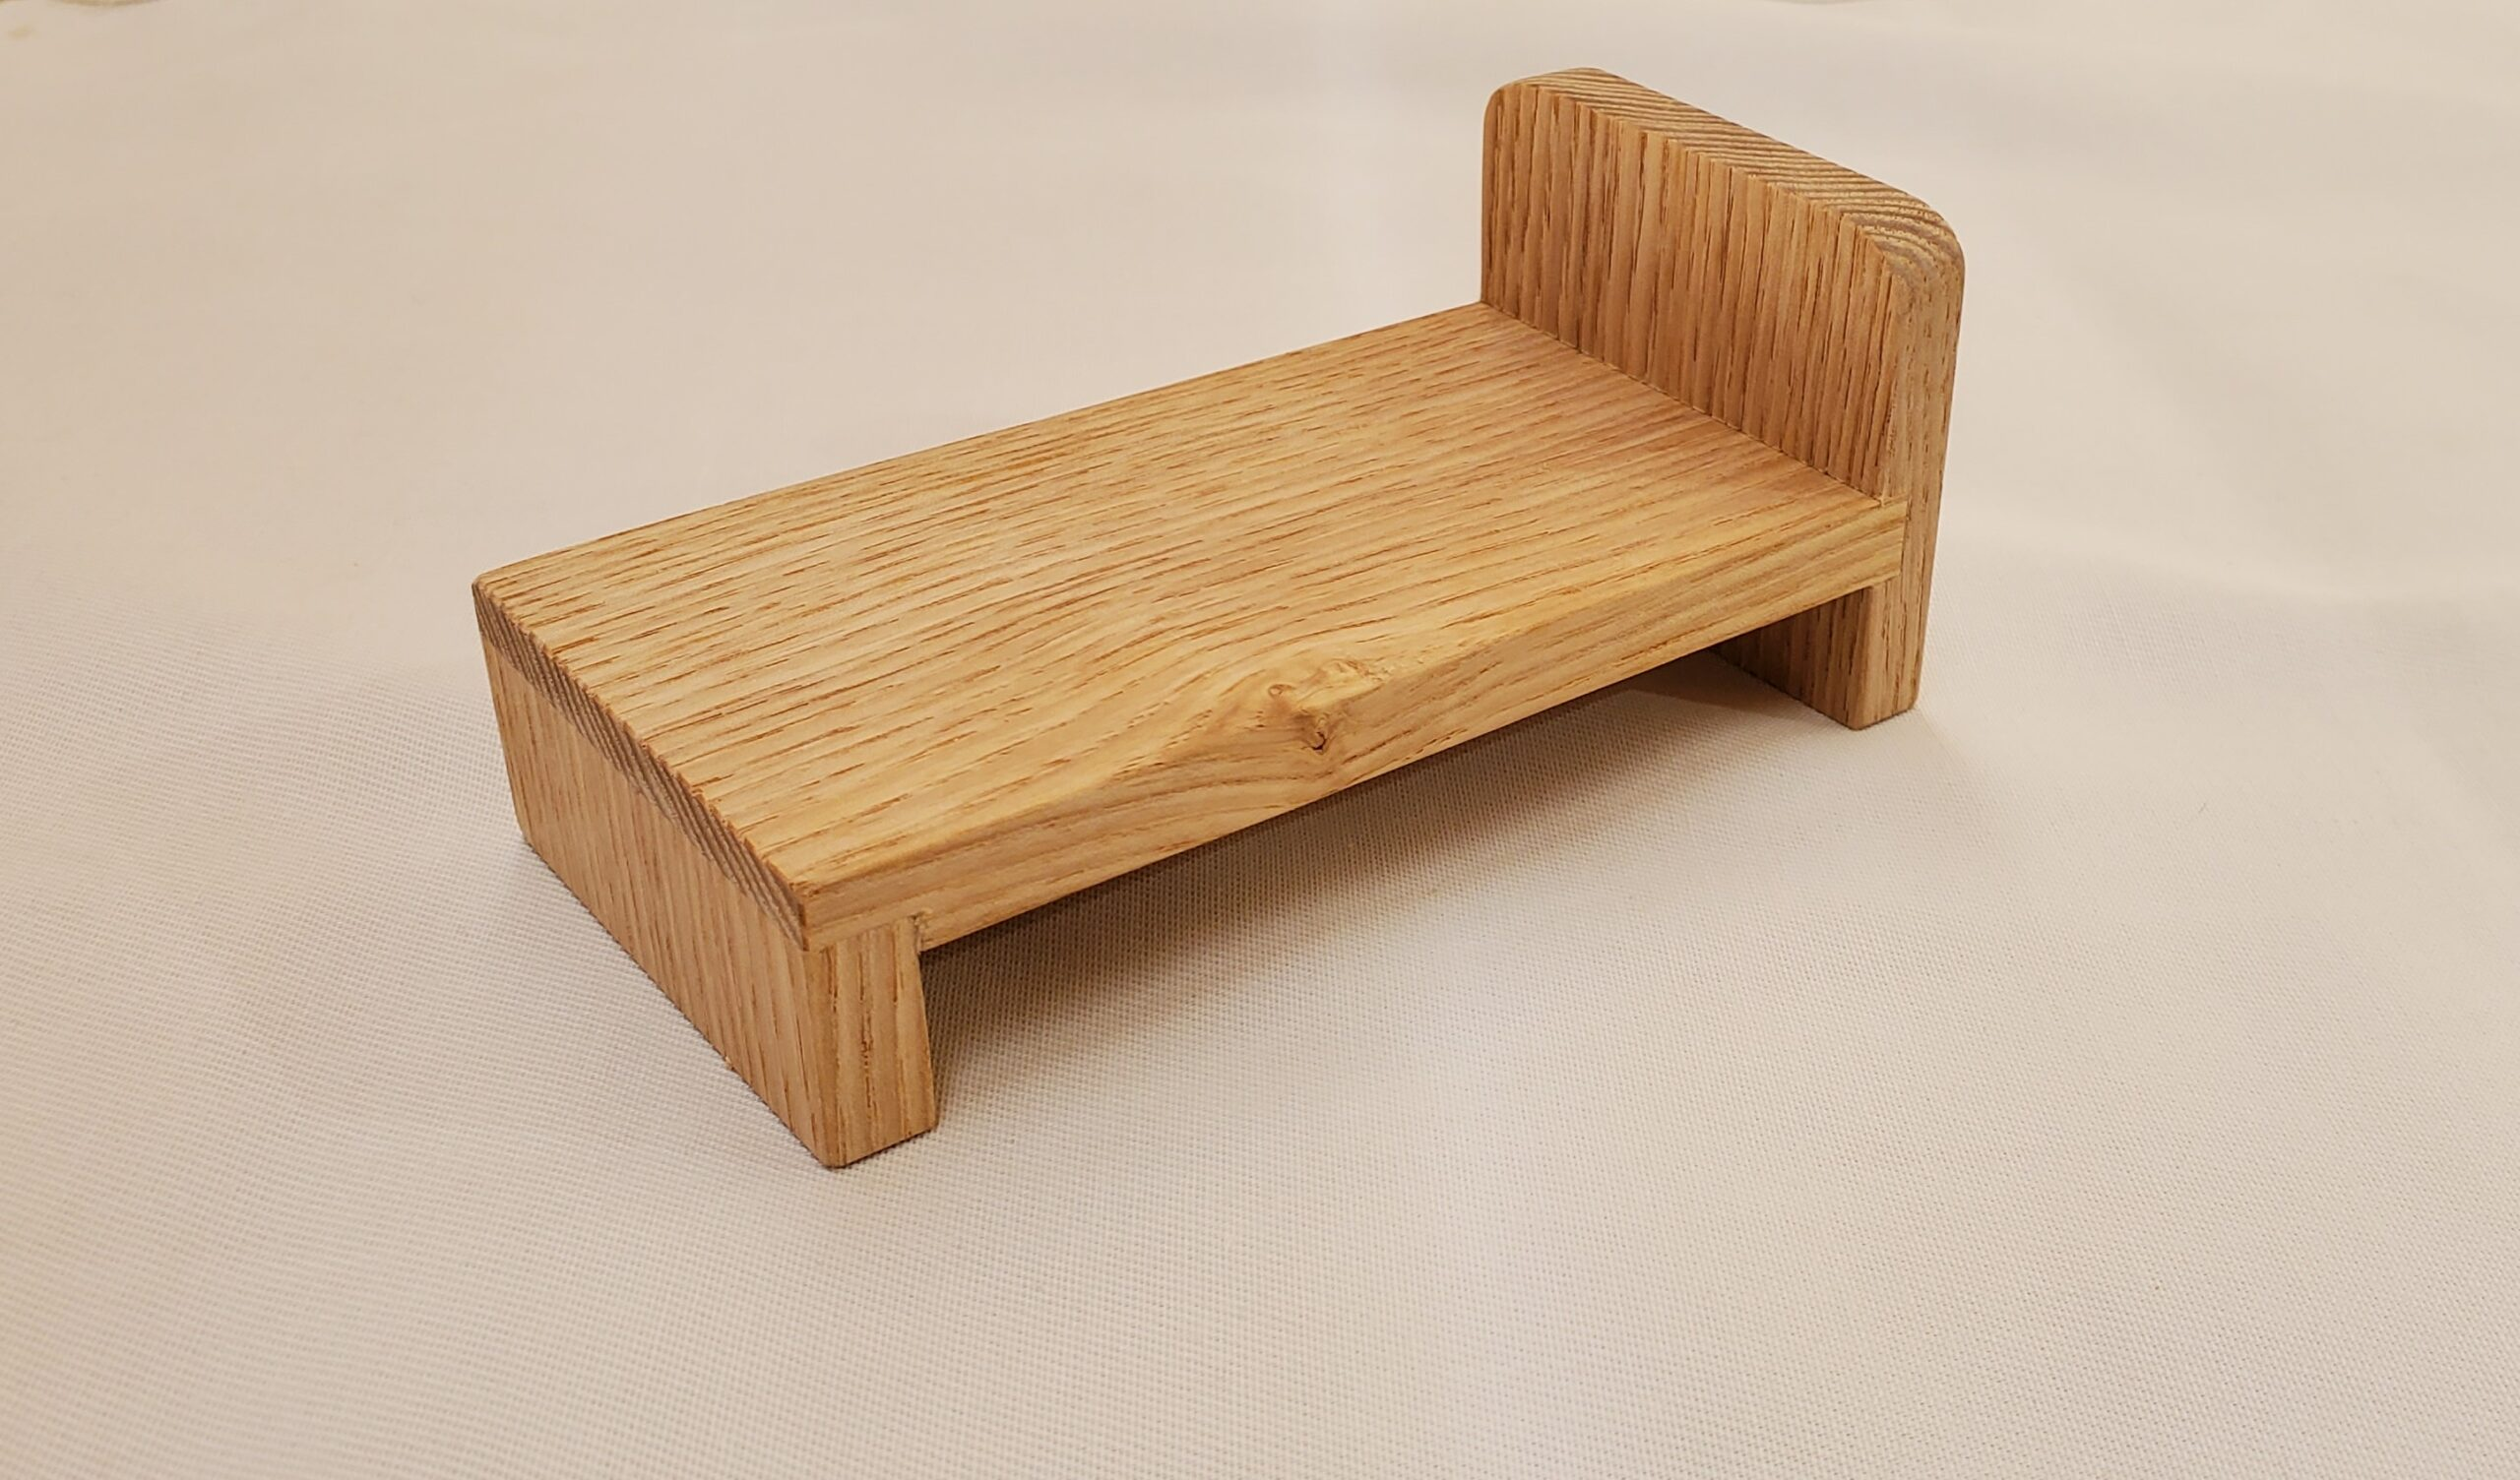 Toy Bed (All-Natural Wood)